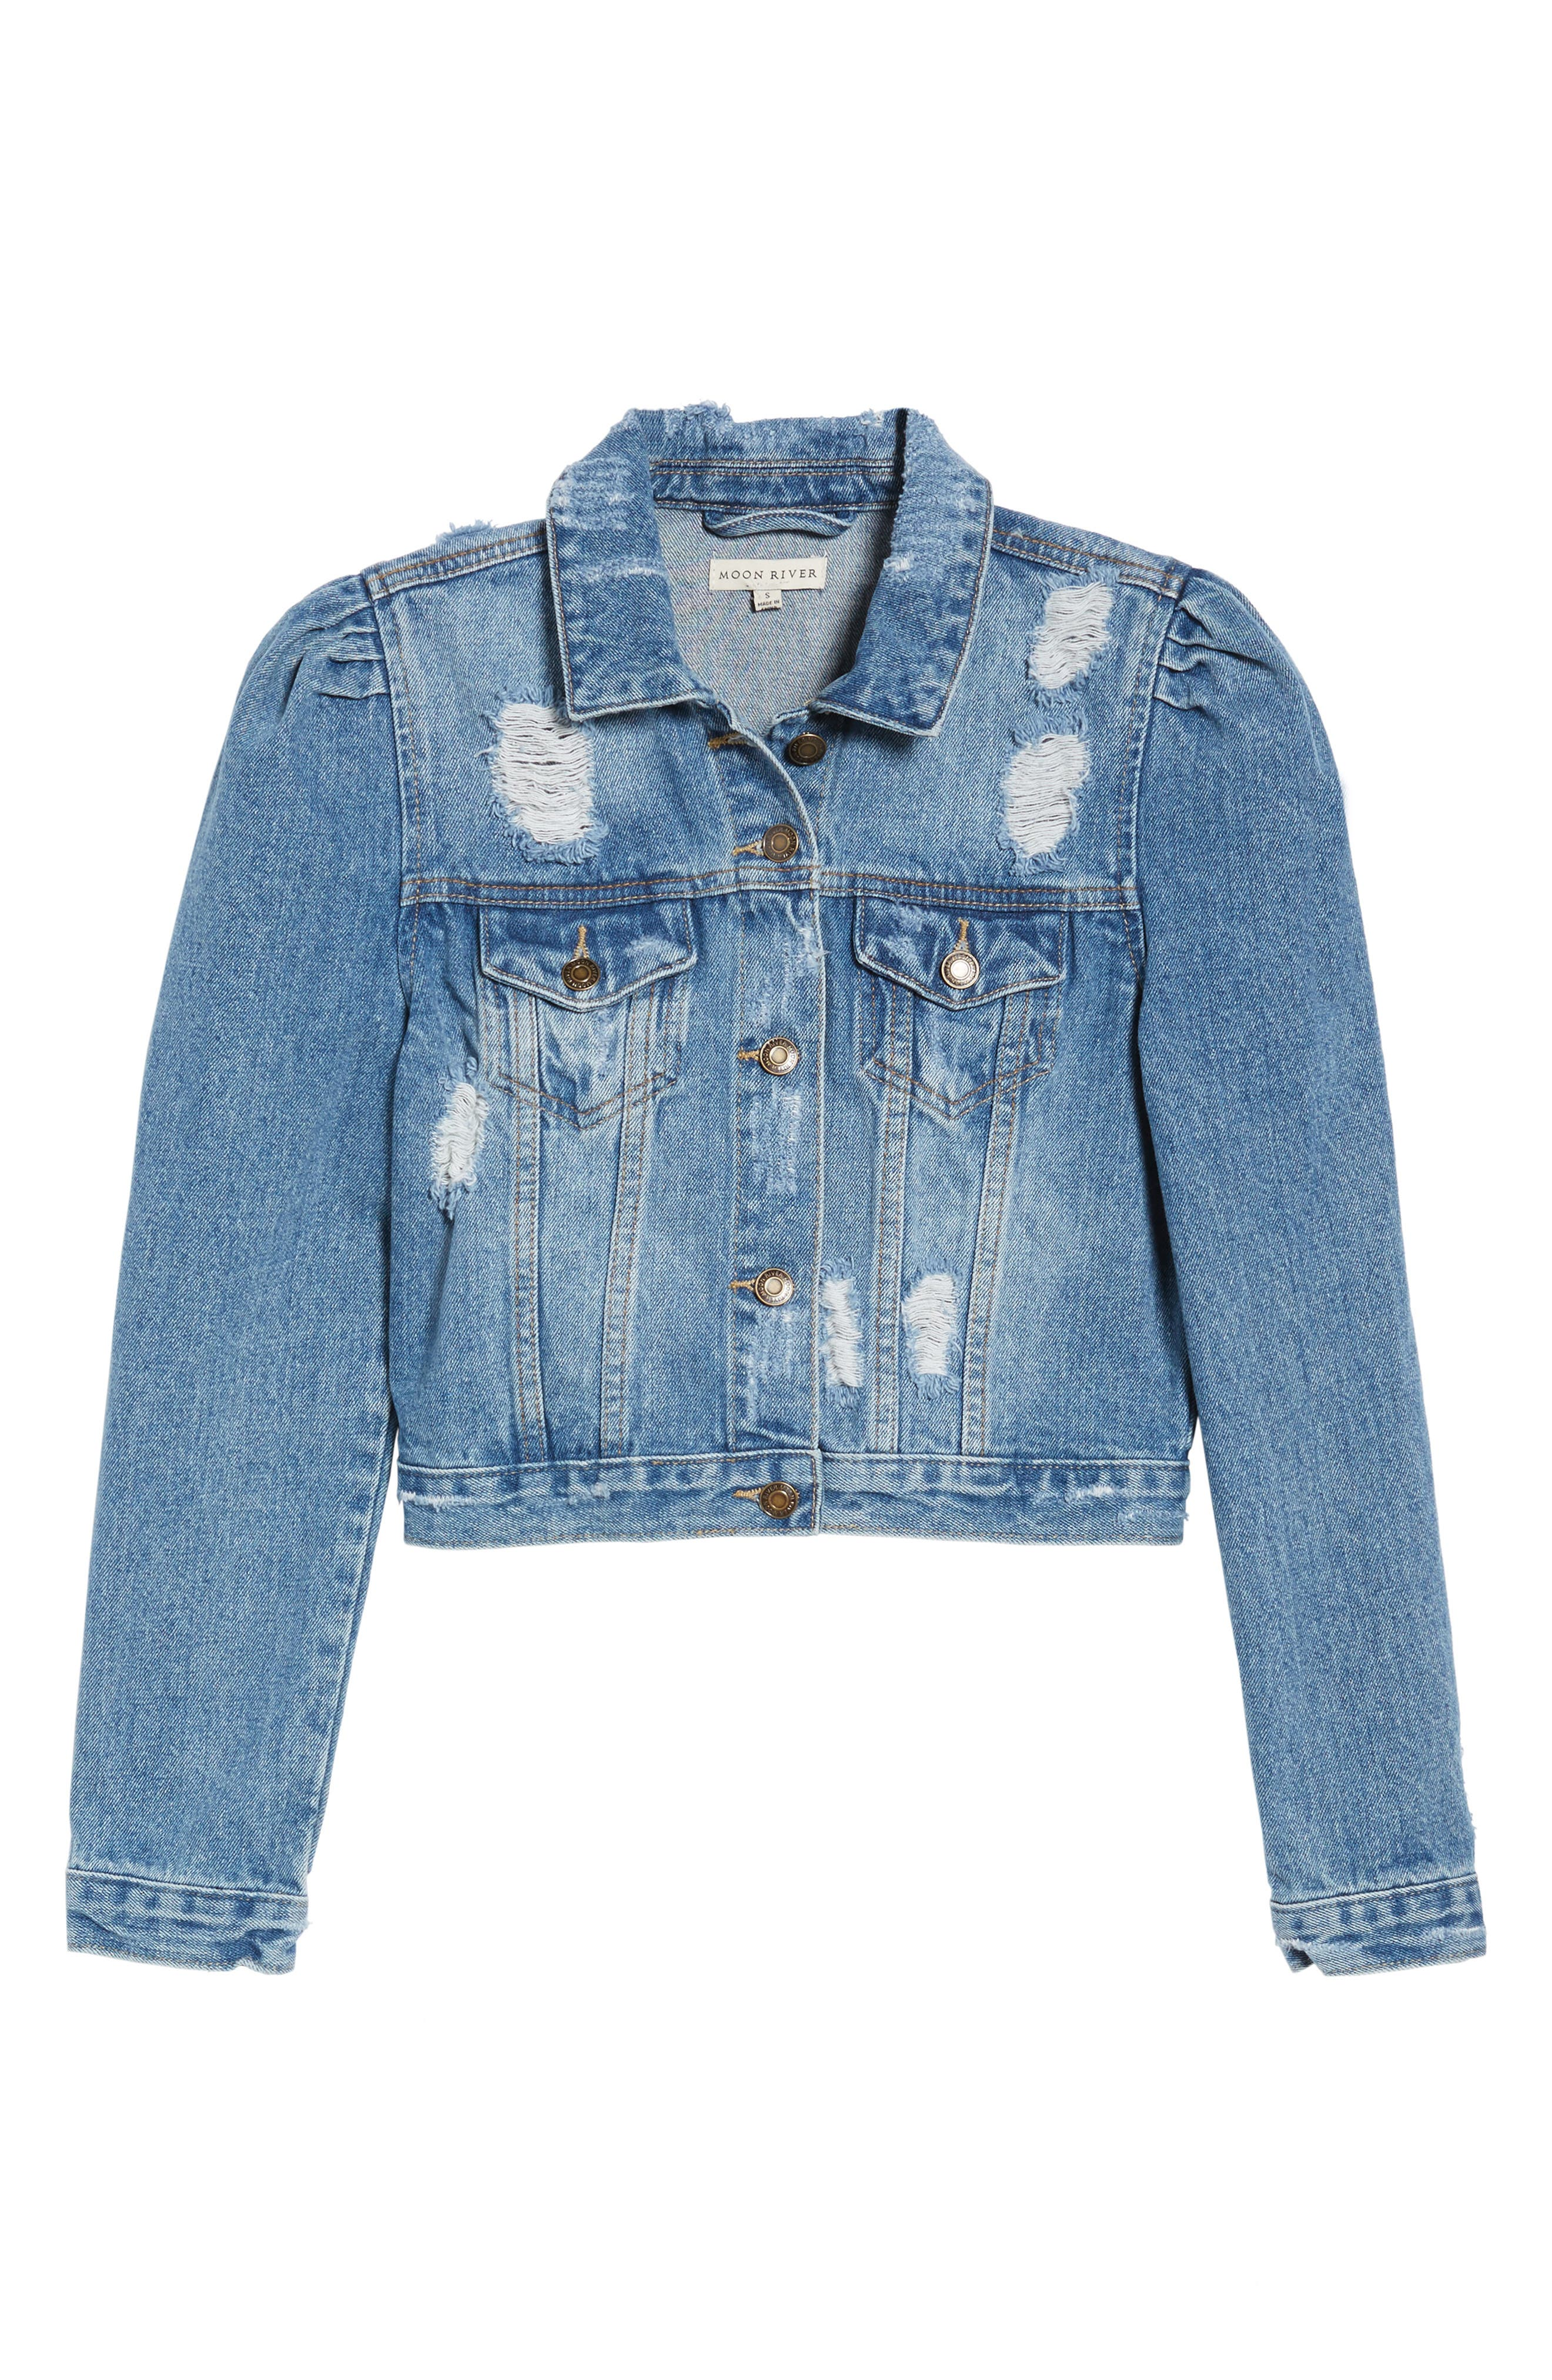 Distressed Denim Jacket,                             Alternate thumbnail 5, color,                             425